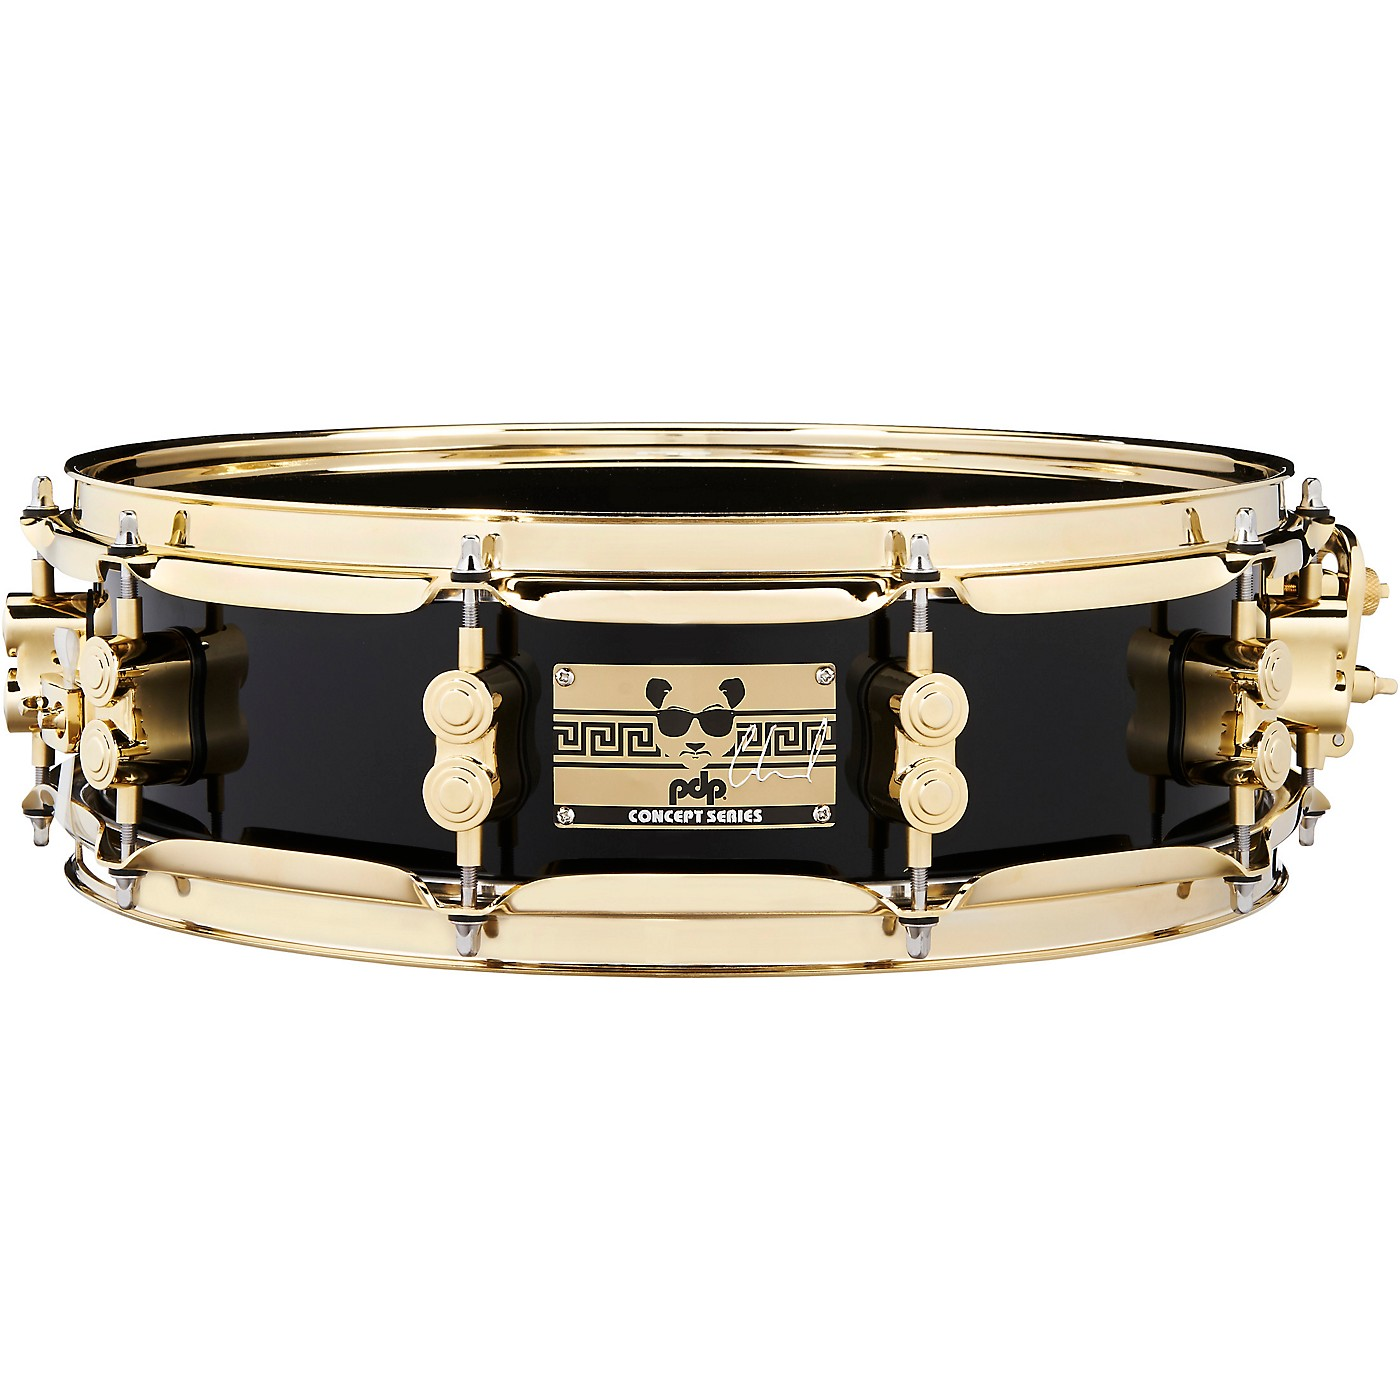 PDP by DW Eric Hernandez Signature Maple Snare Drum thumbnail